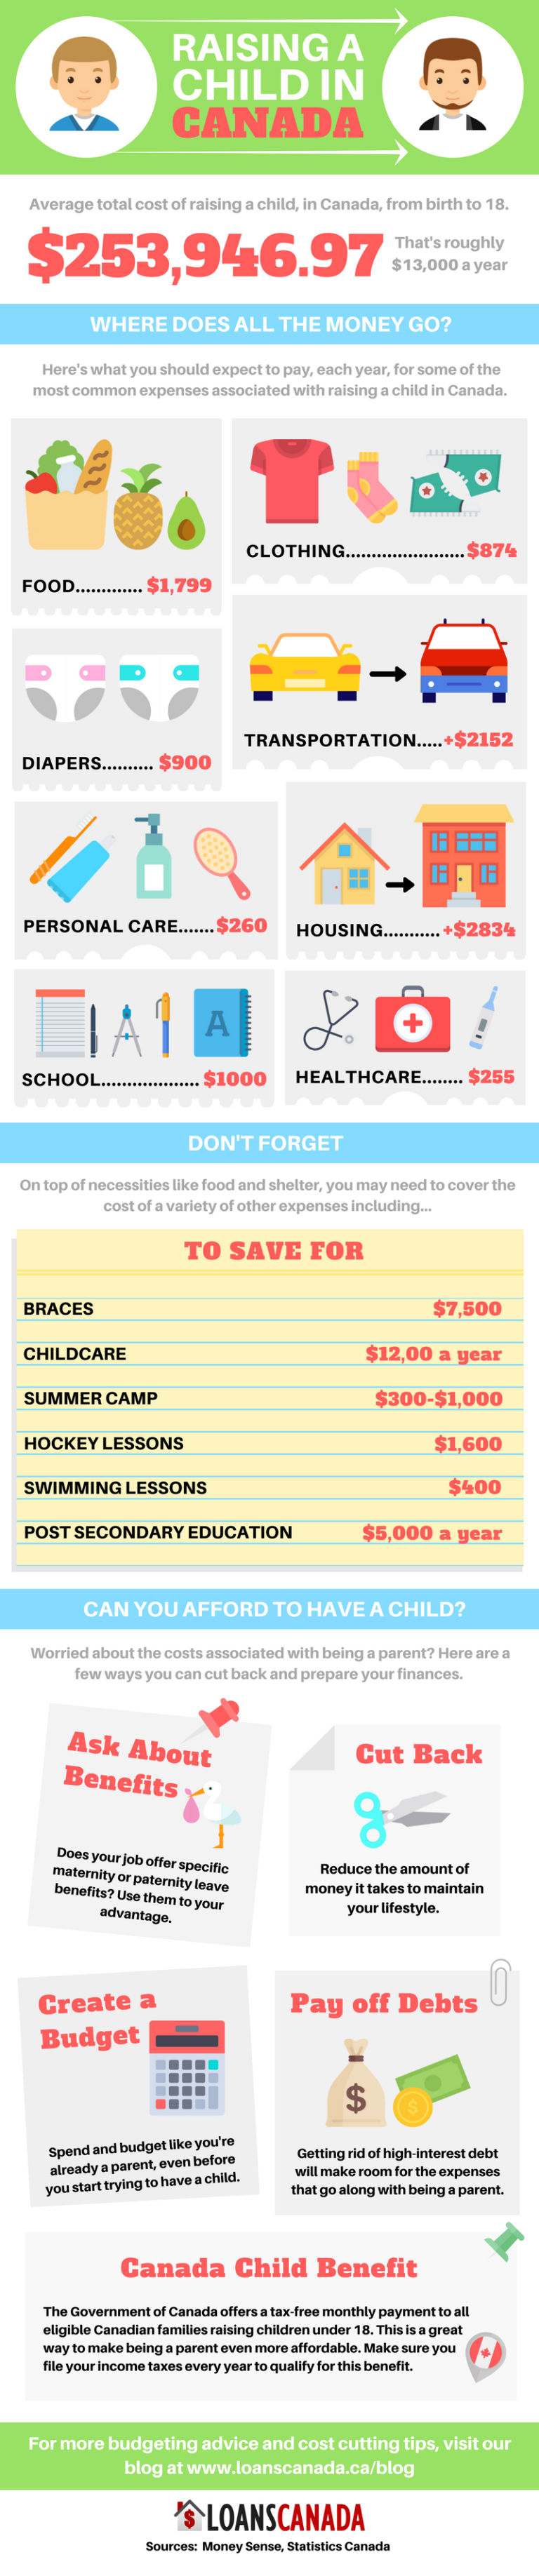 the cost of raising a child in Canada